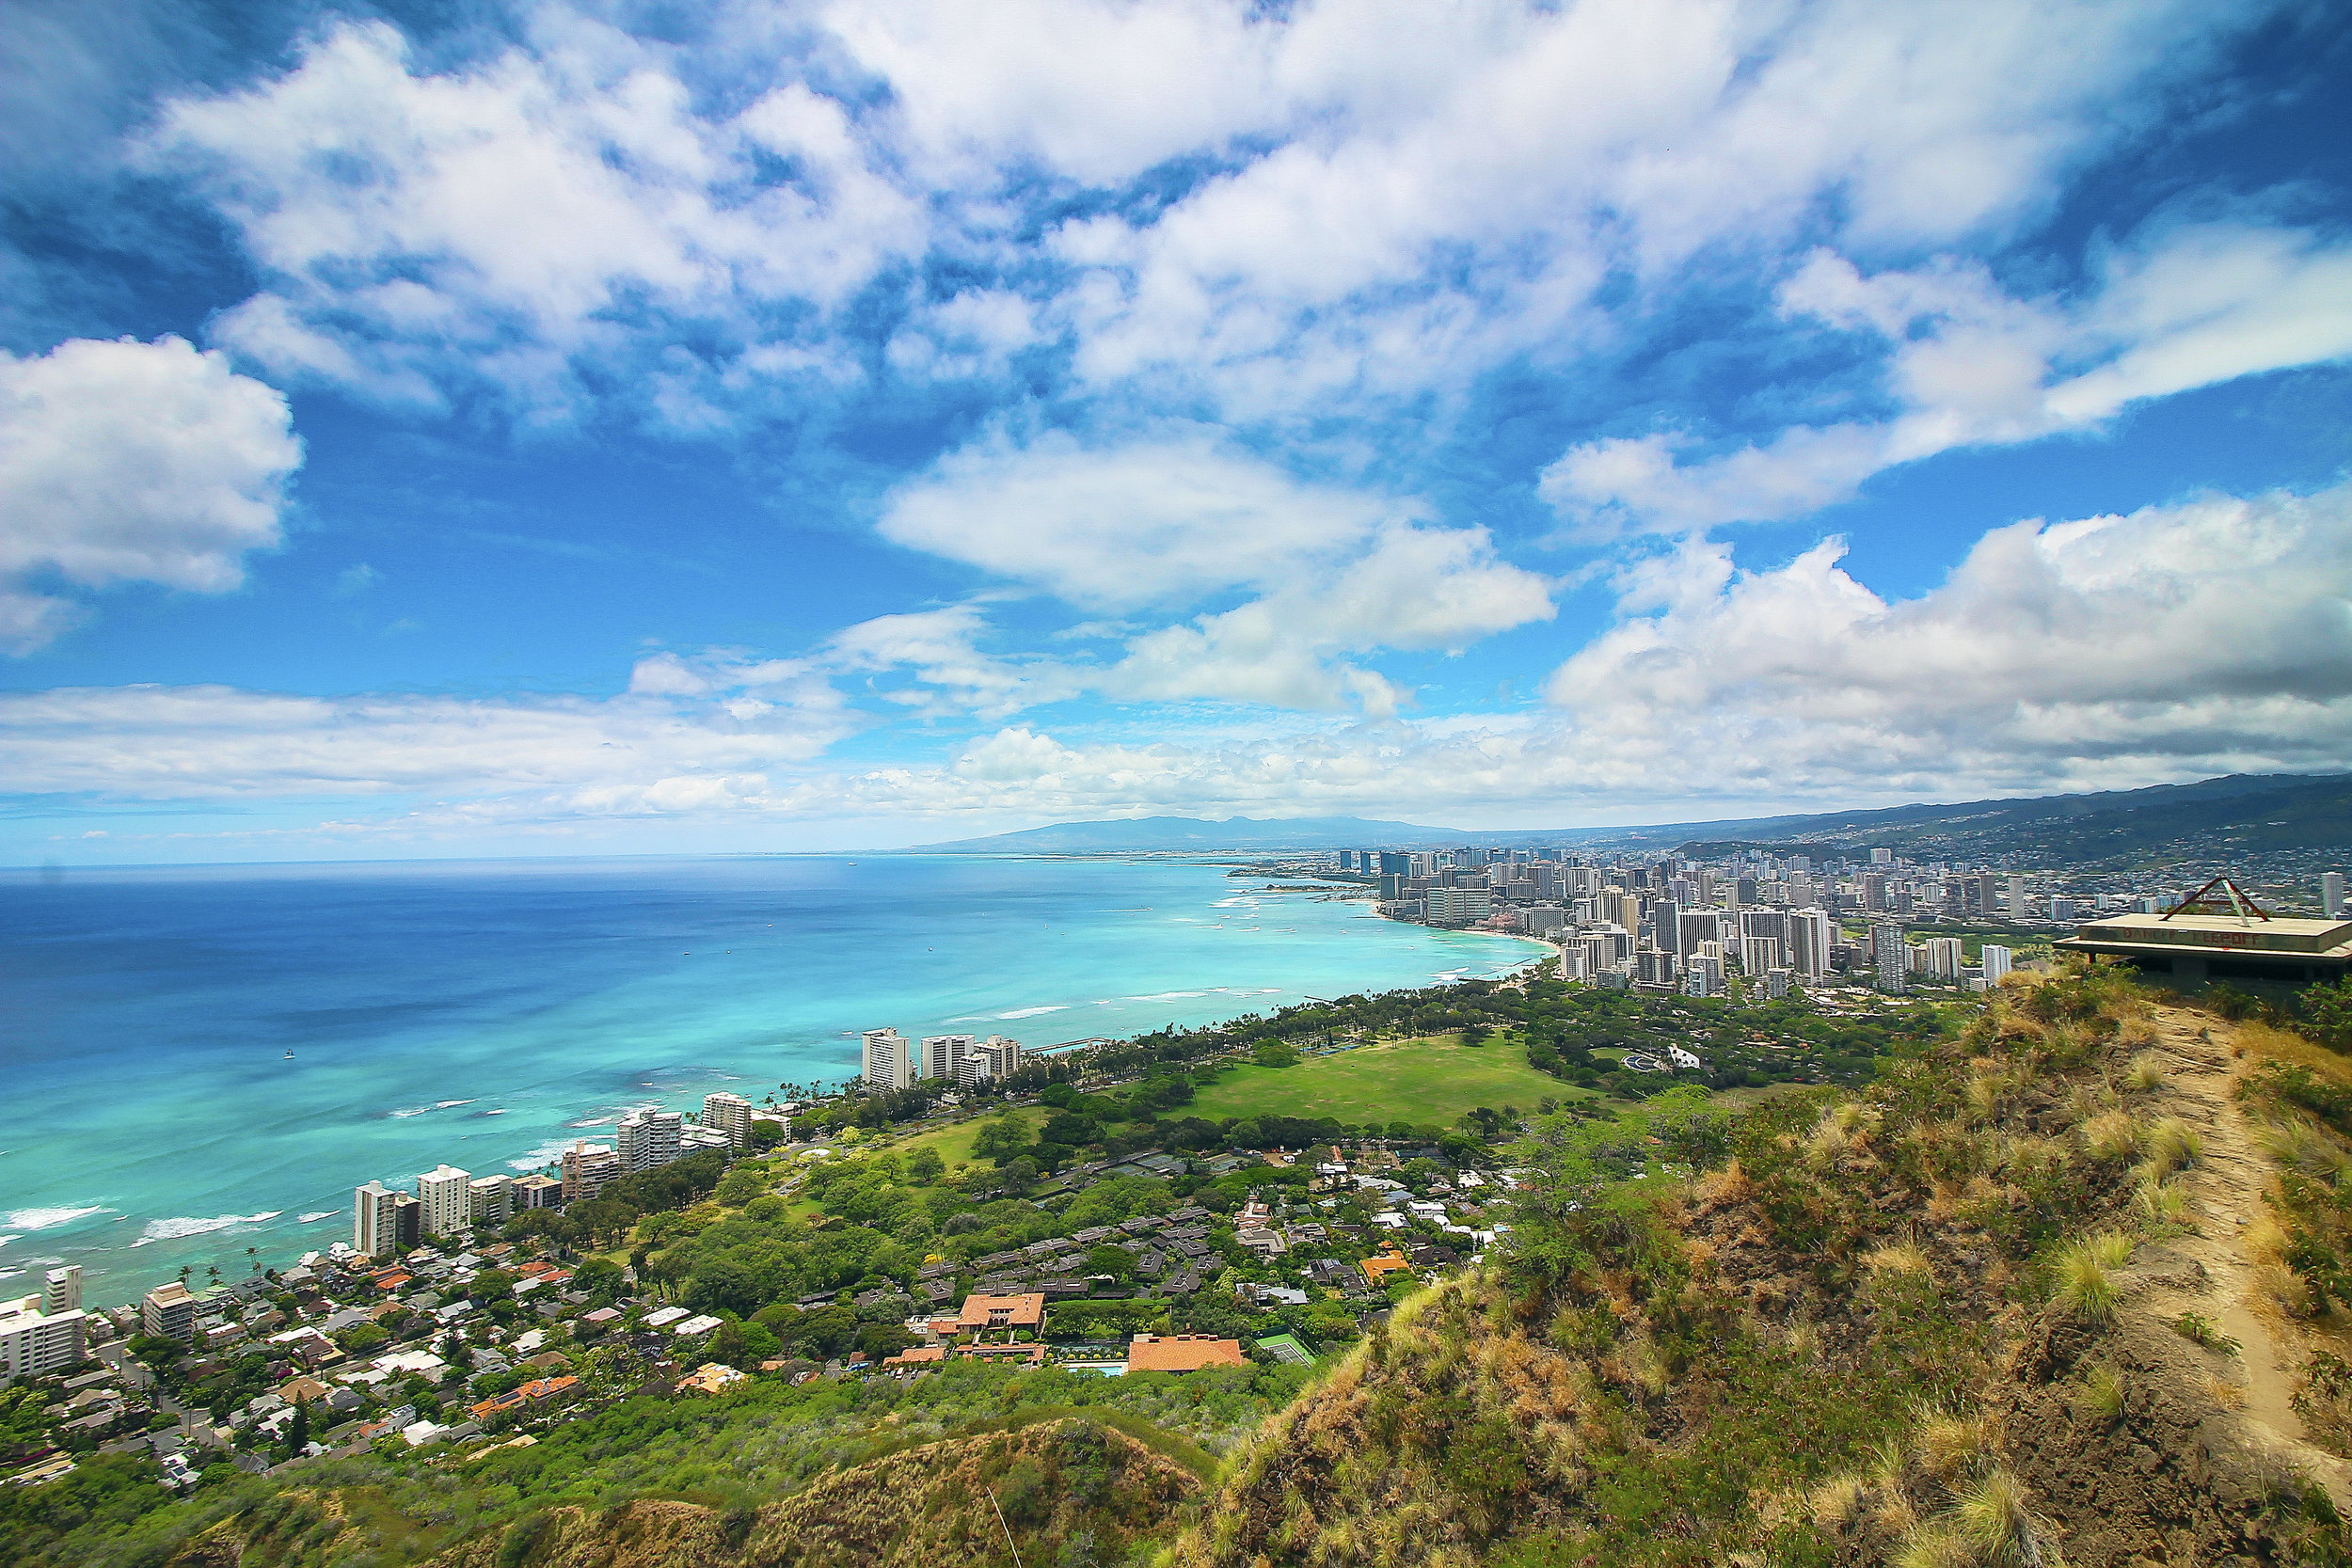 Waikiki as seen from top of Diamond Head Crater